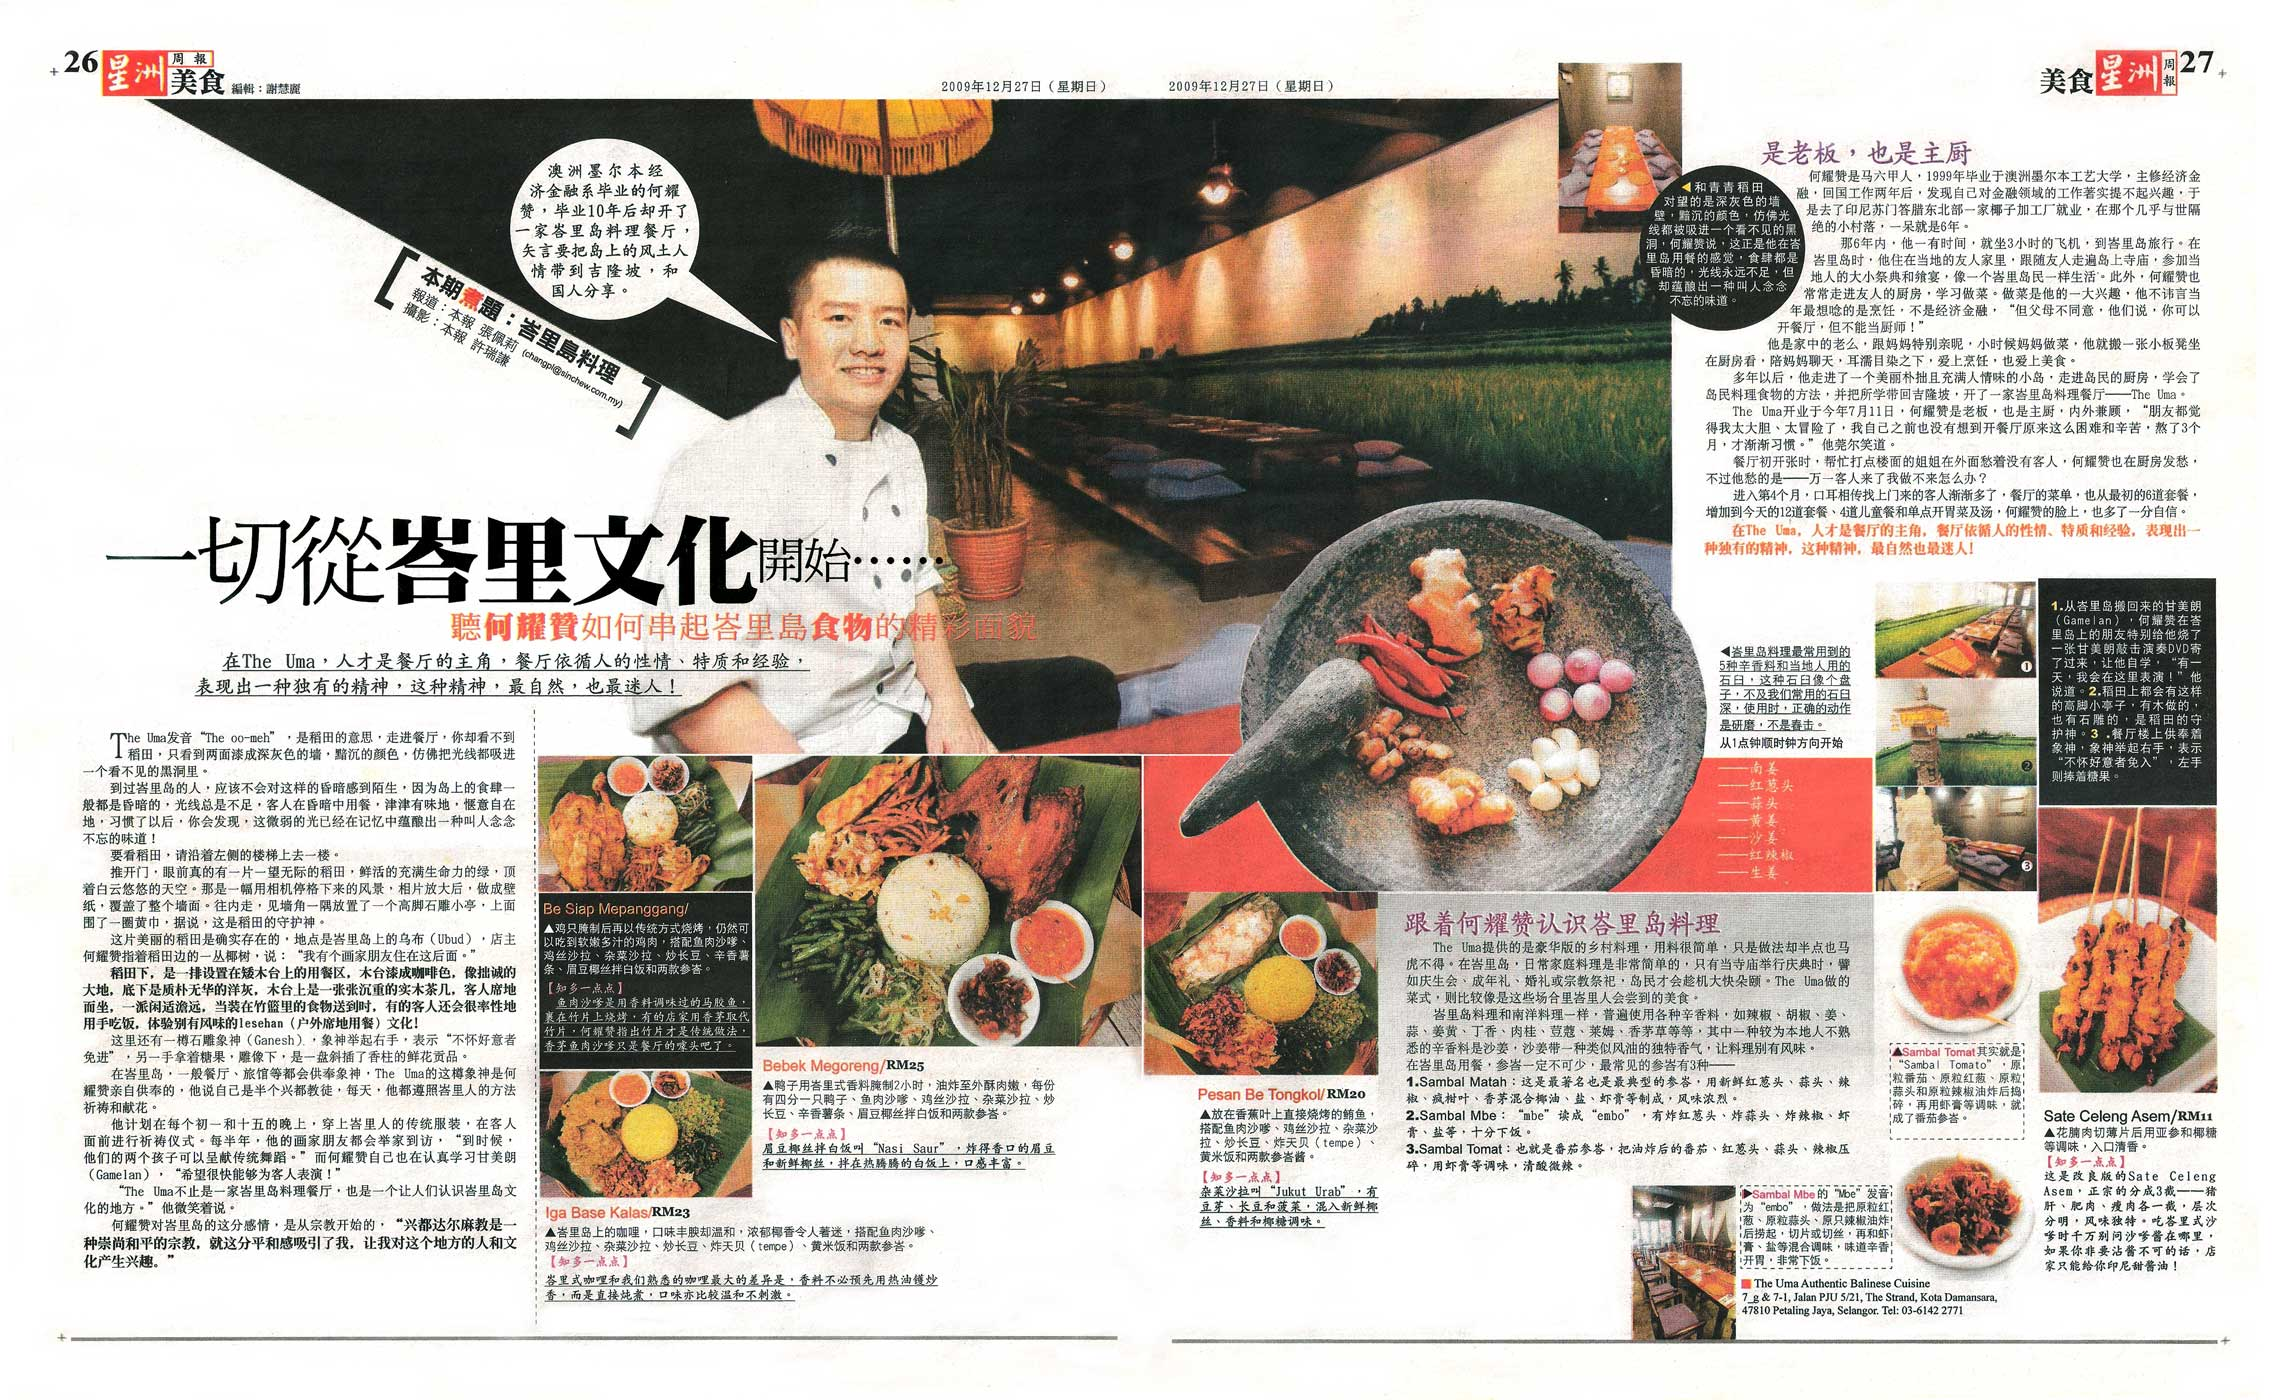 the uma bali restaurant newspaper review sinchew daily